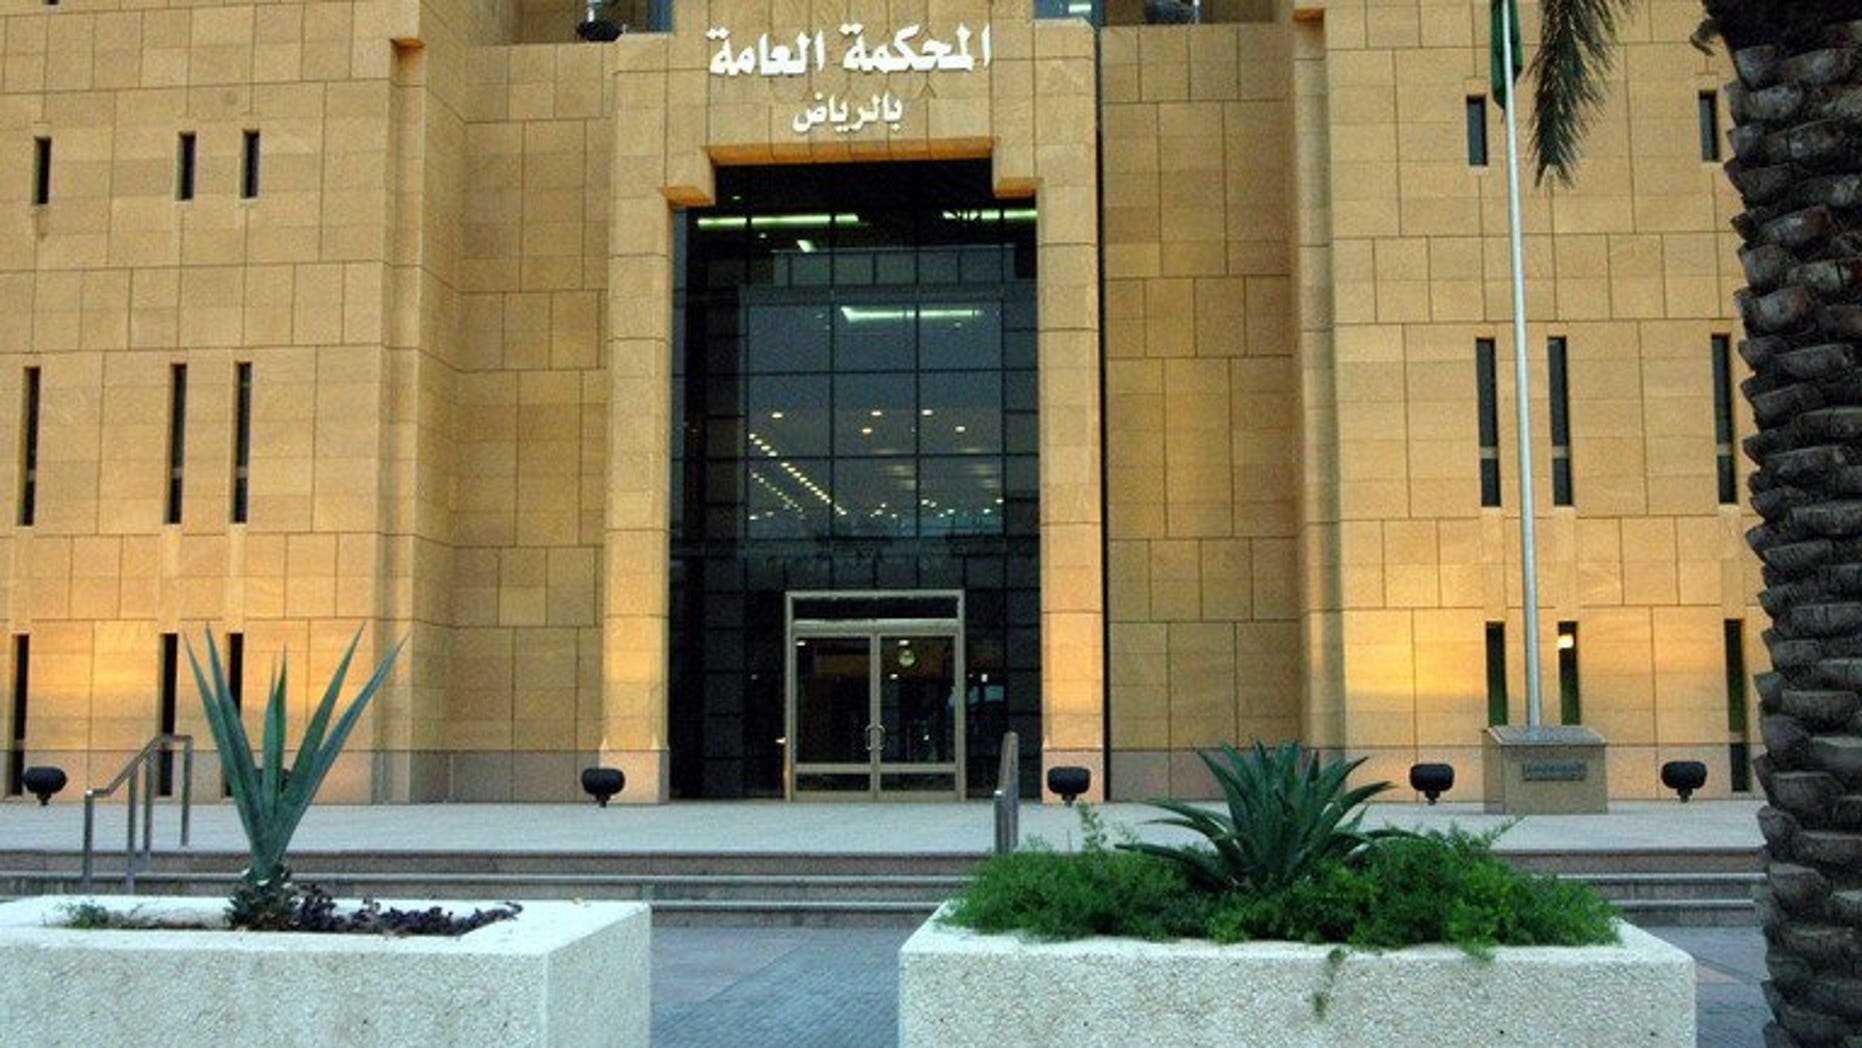 """The General Court in Riyadh on May 15, 2005. A Saudi court sentenced on Monday a rights activist to seven years in jail and 600 lashes for setting up a """"liberal"""" network and alleged insults to Islam, activists said."""